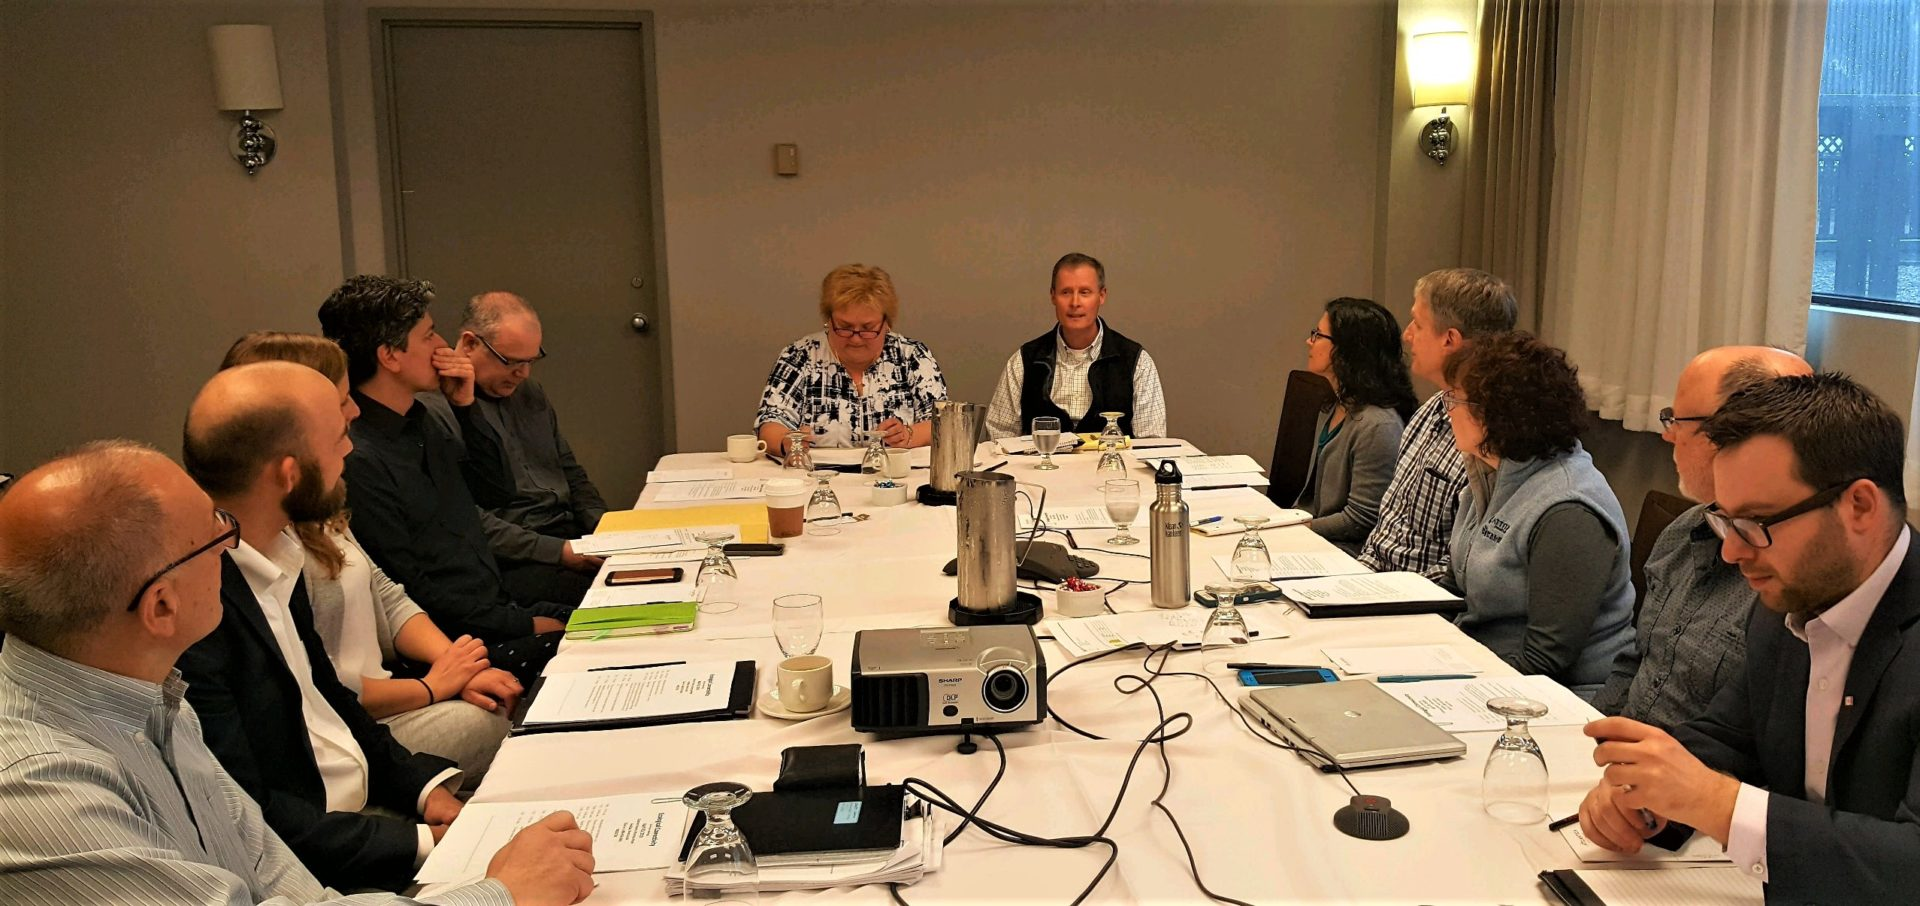 Ecological Connectivity Working Group Meets to Discuss Goals for Final Report